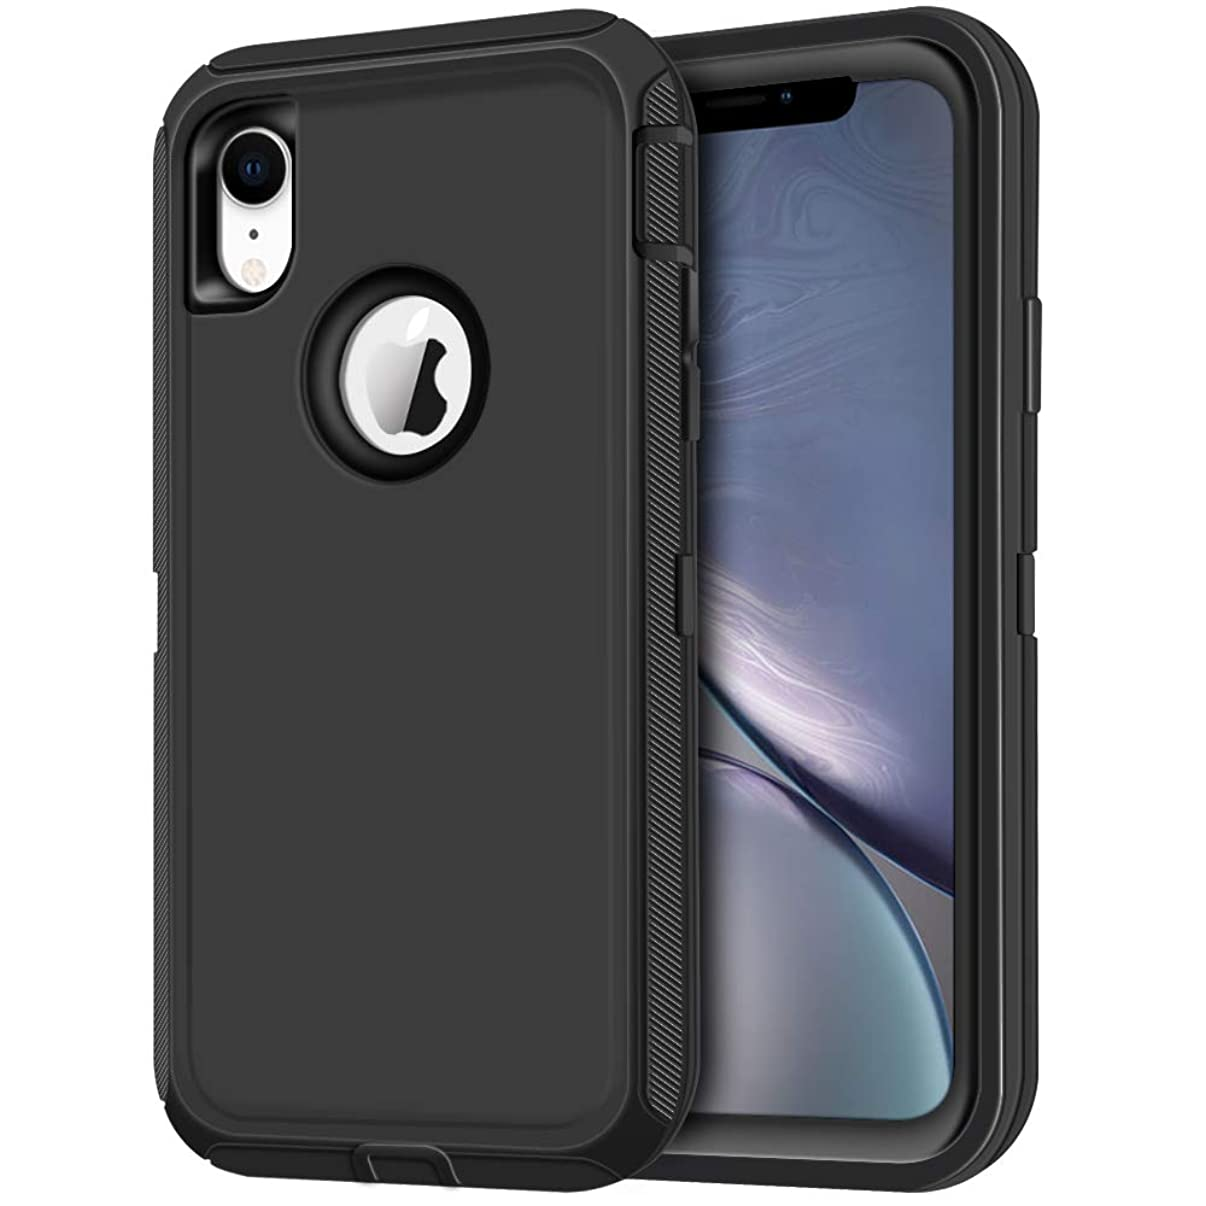 iPhone XR Case, LOEV Heavy Duty Shockproof Case Armor Anti-Scratch Full Body 3 Layer Hybrid Protective Back Cover Hard PC Shell Soft TPU Bumper Defender Case for Apple iPhone XR 6.1